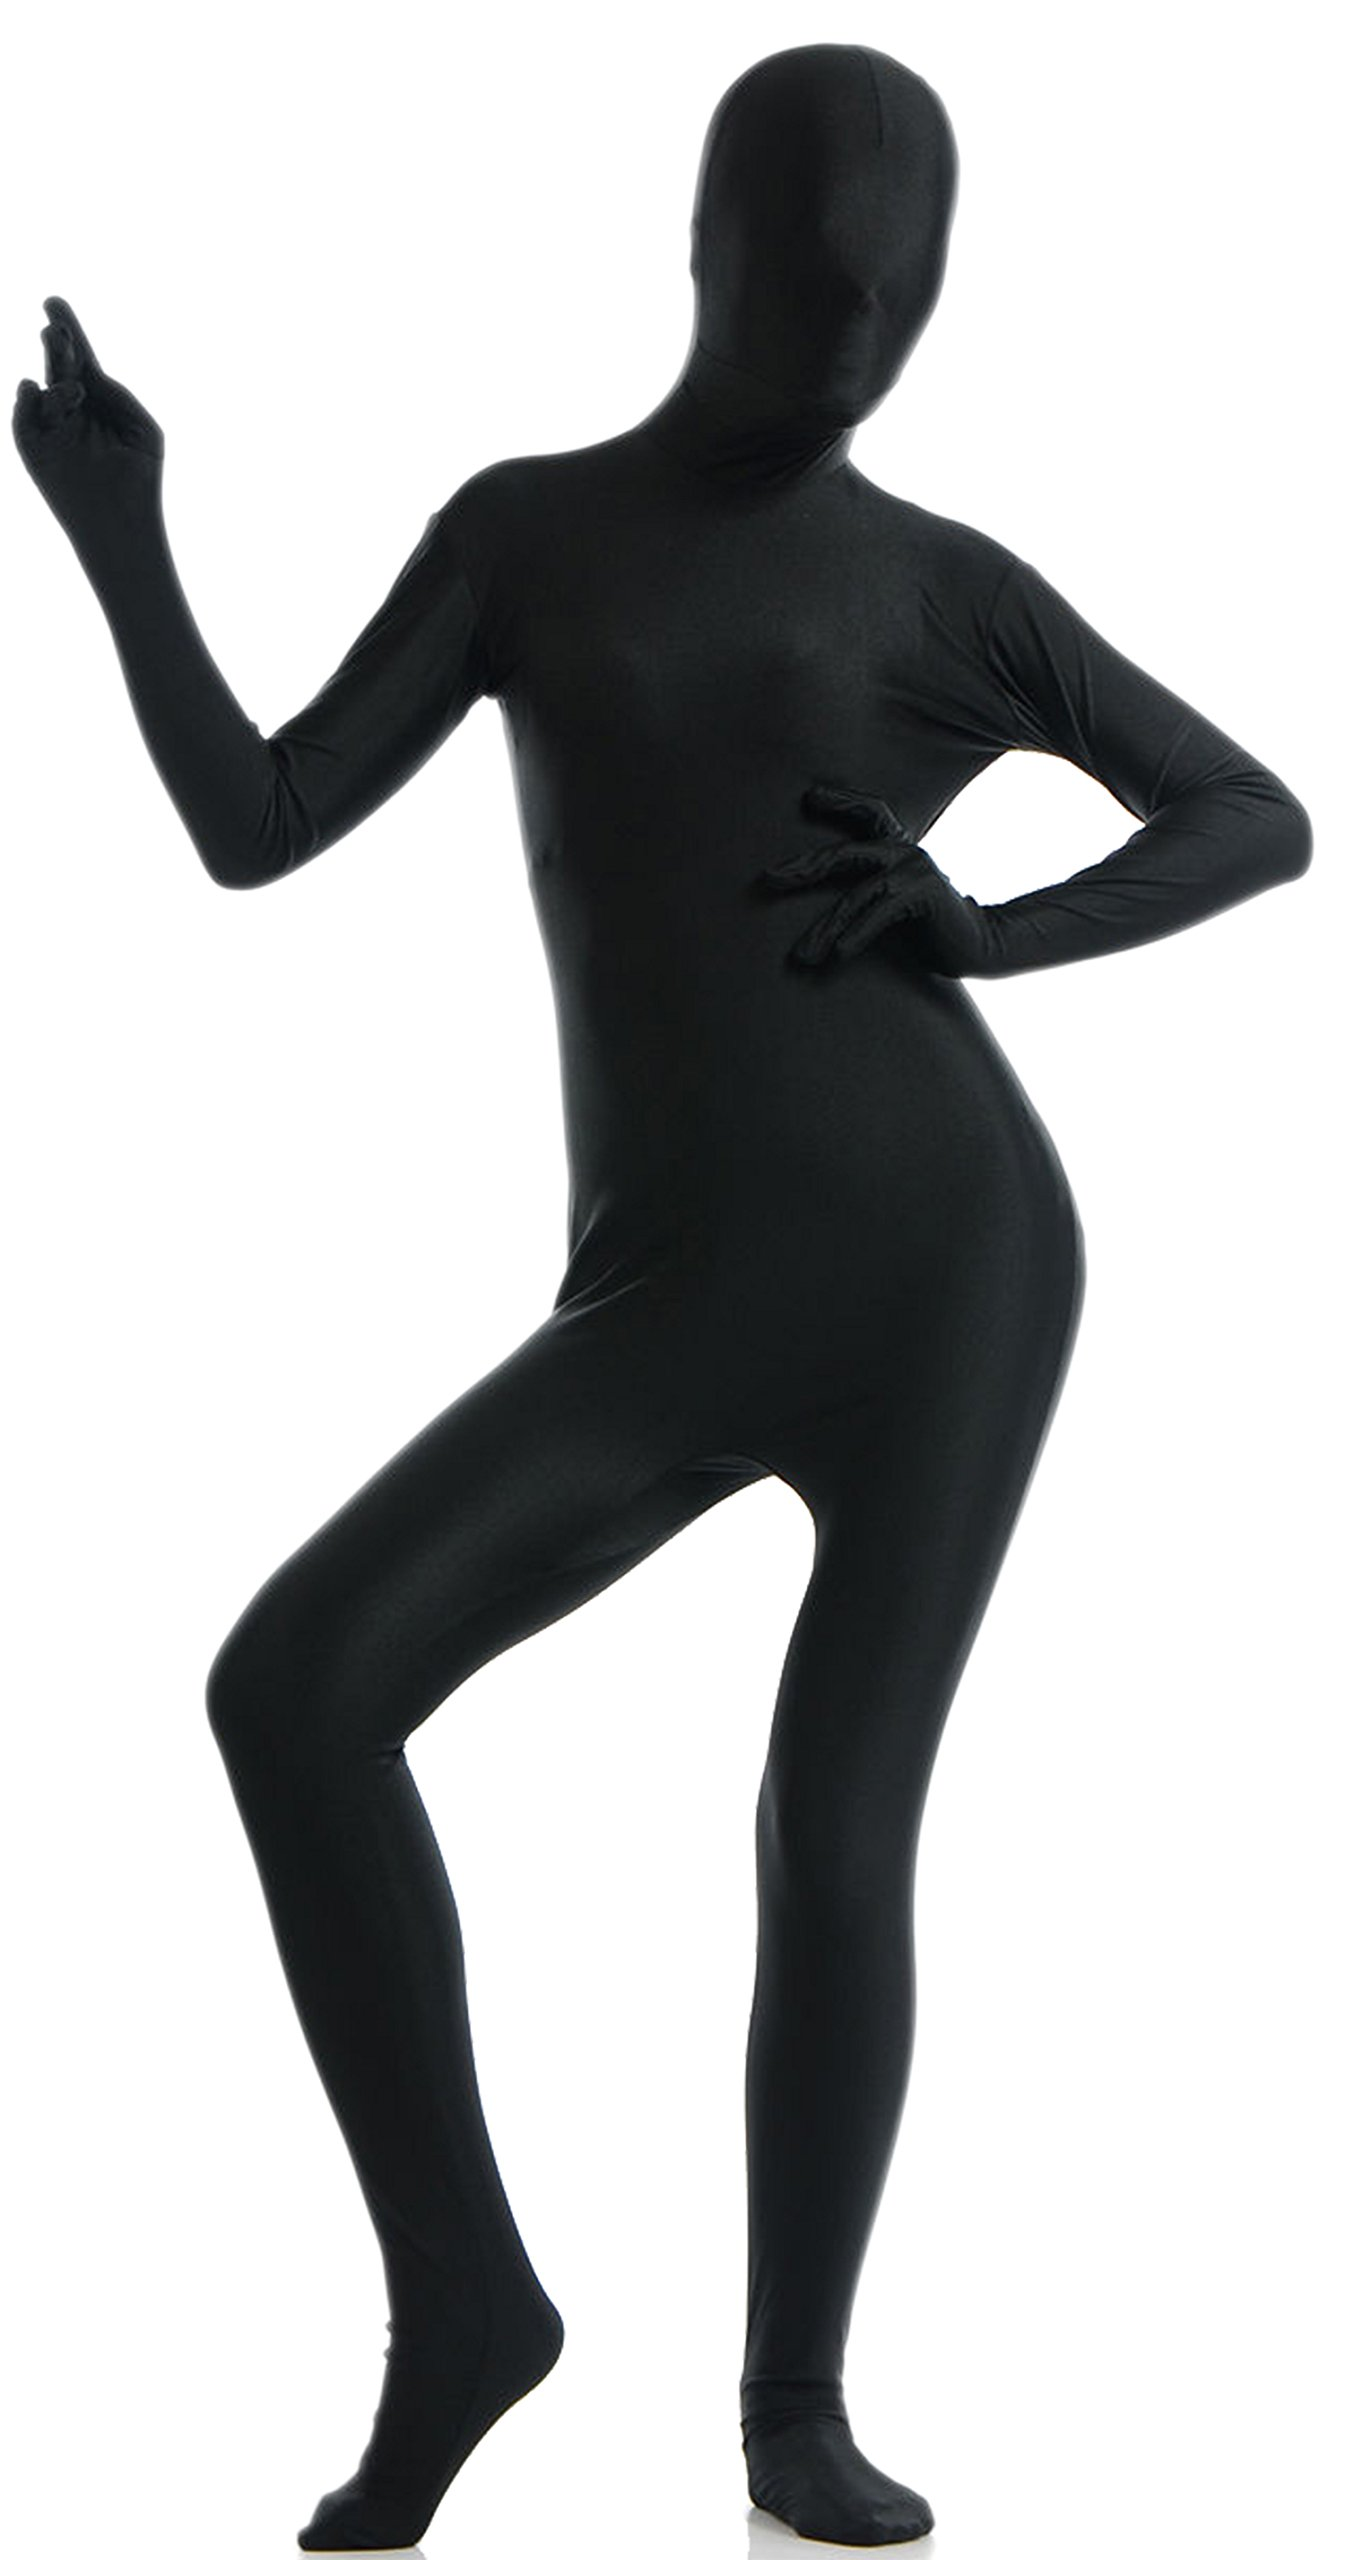 VSVO Unisex Spandex Full Body Suit for Adults and Children 71t5dRT3PqL